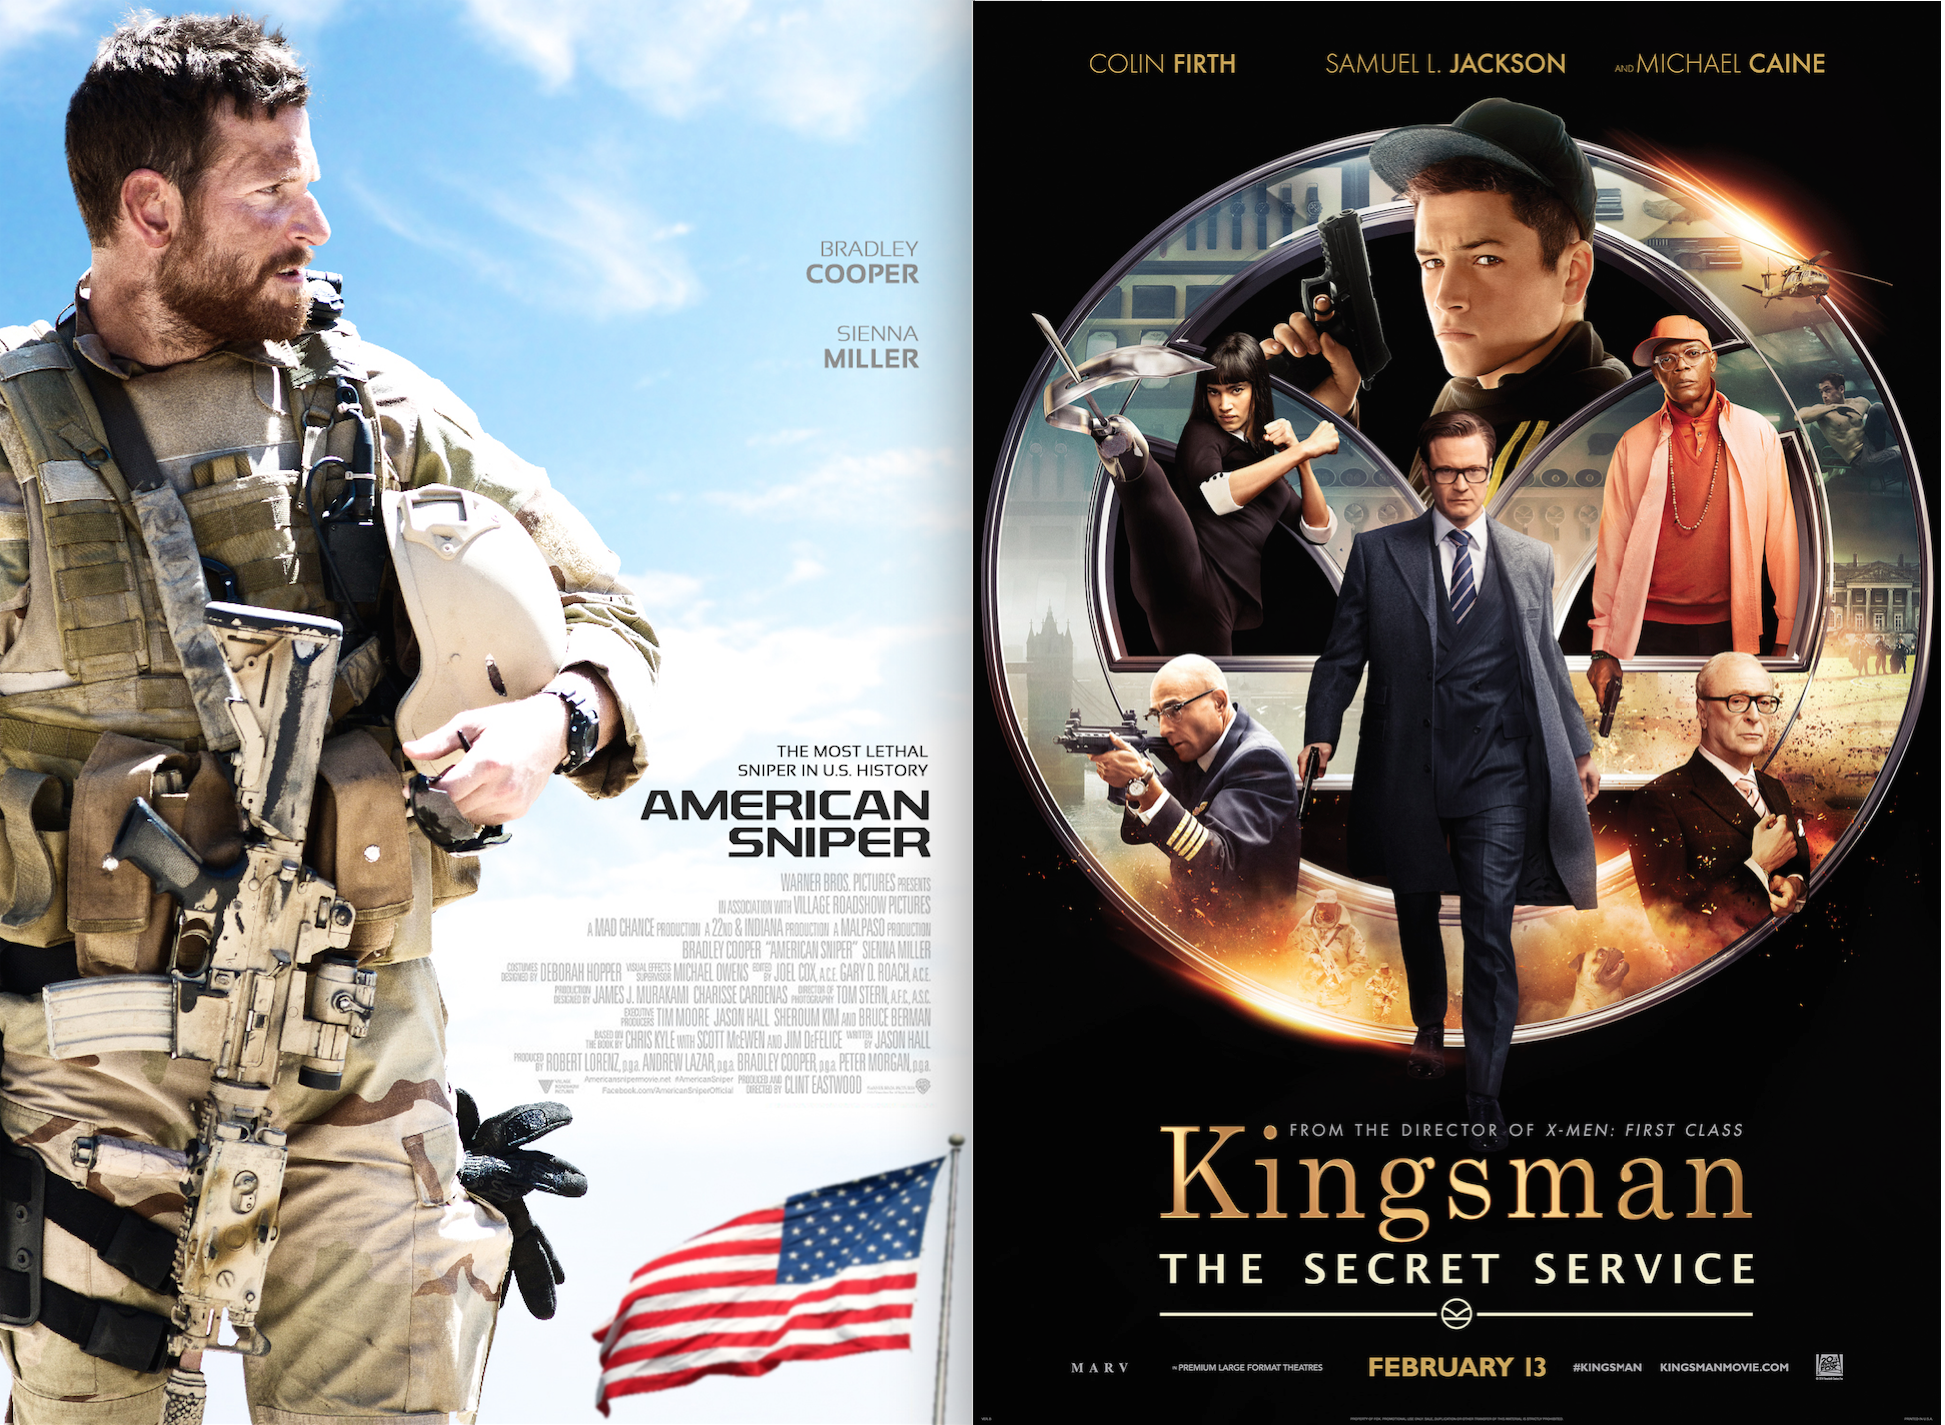 American Snipper and Kingsman